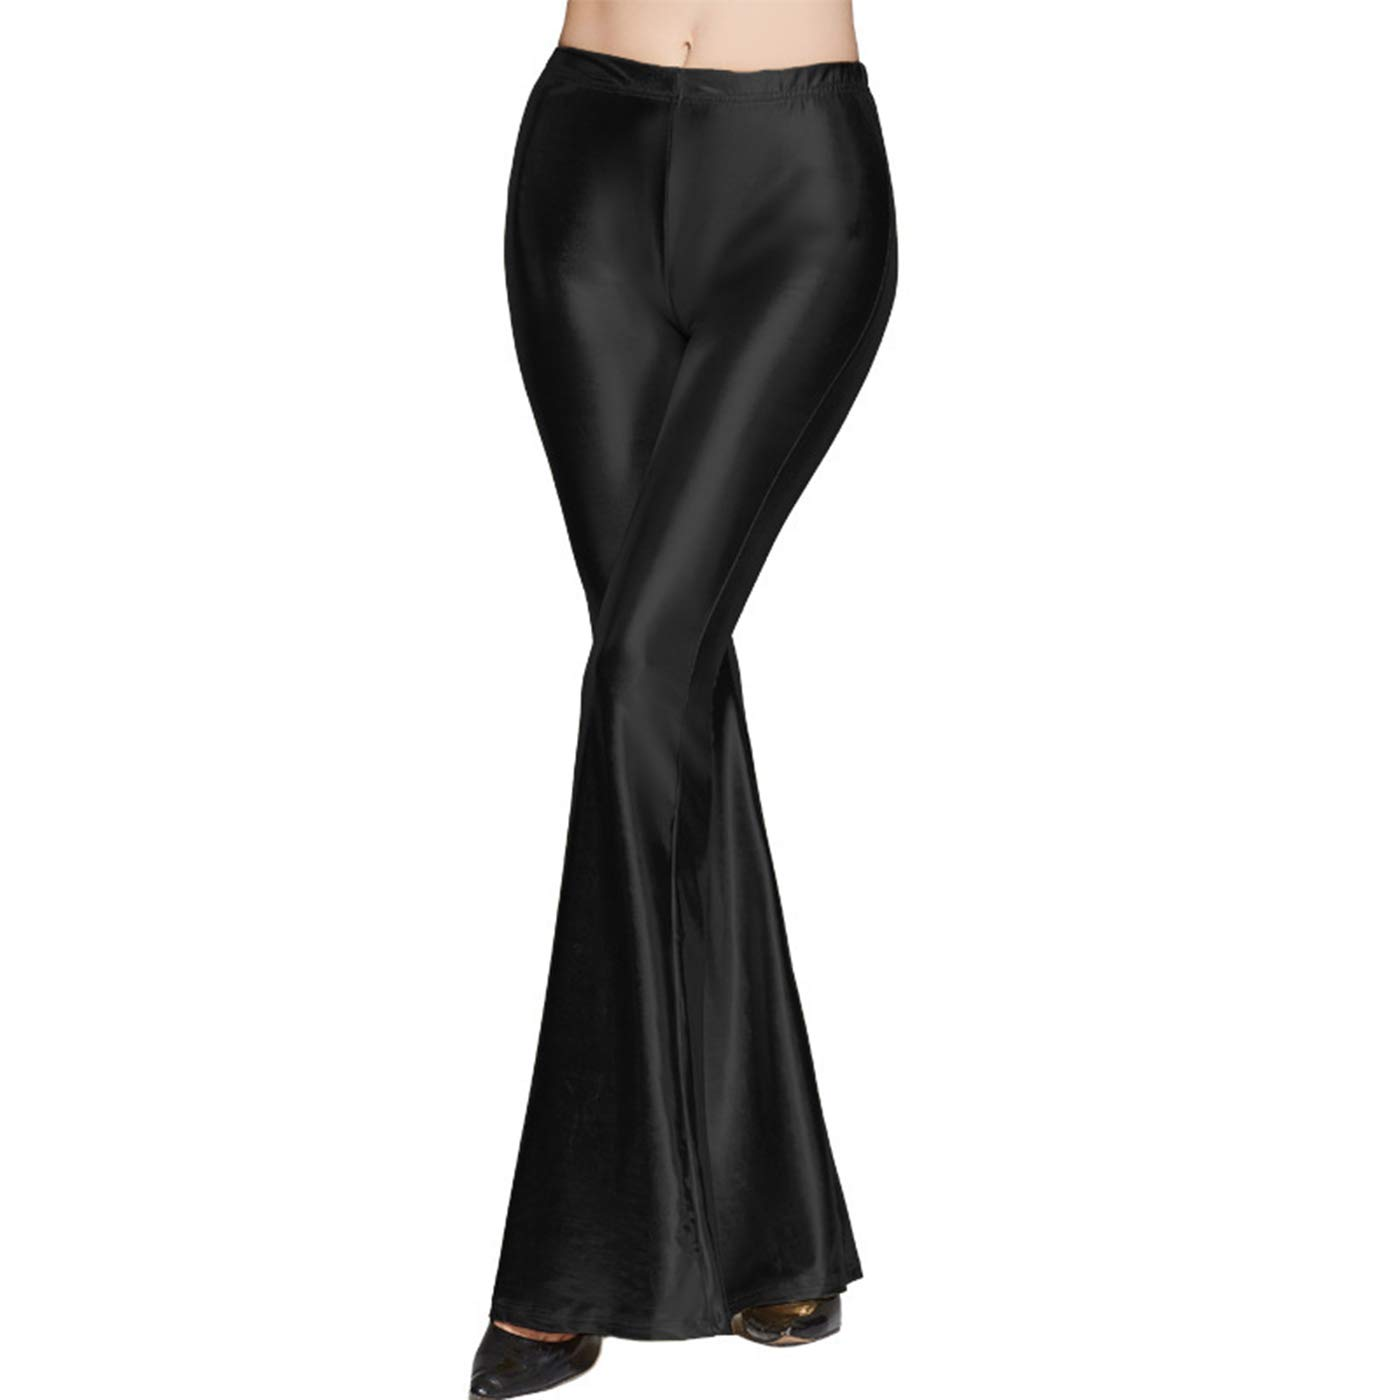 Amazon.com  Eternal Classical Womens Shinny Metallic Sequins High Waist  Stretchy Bell Bottom Flared Pants a40edea758fb